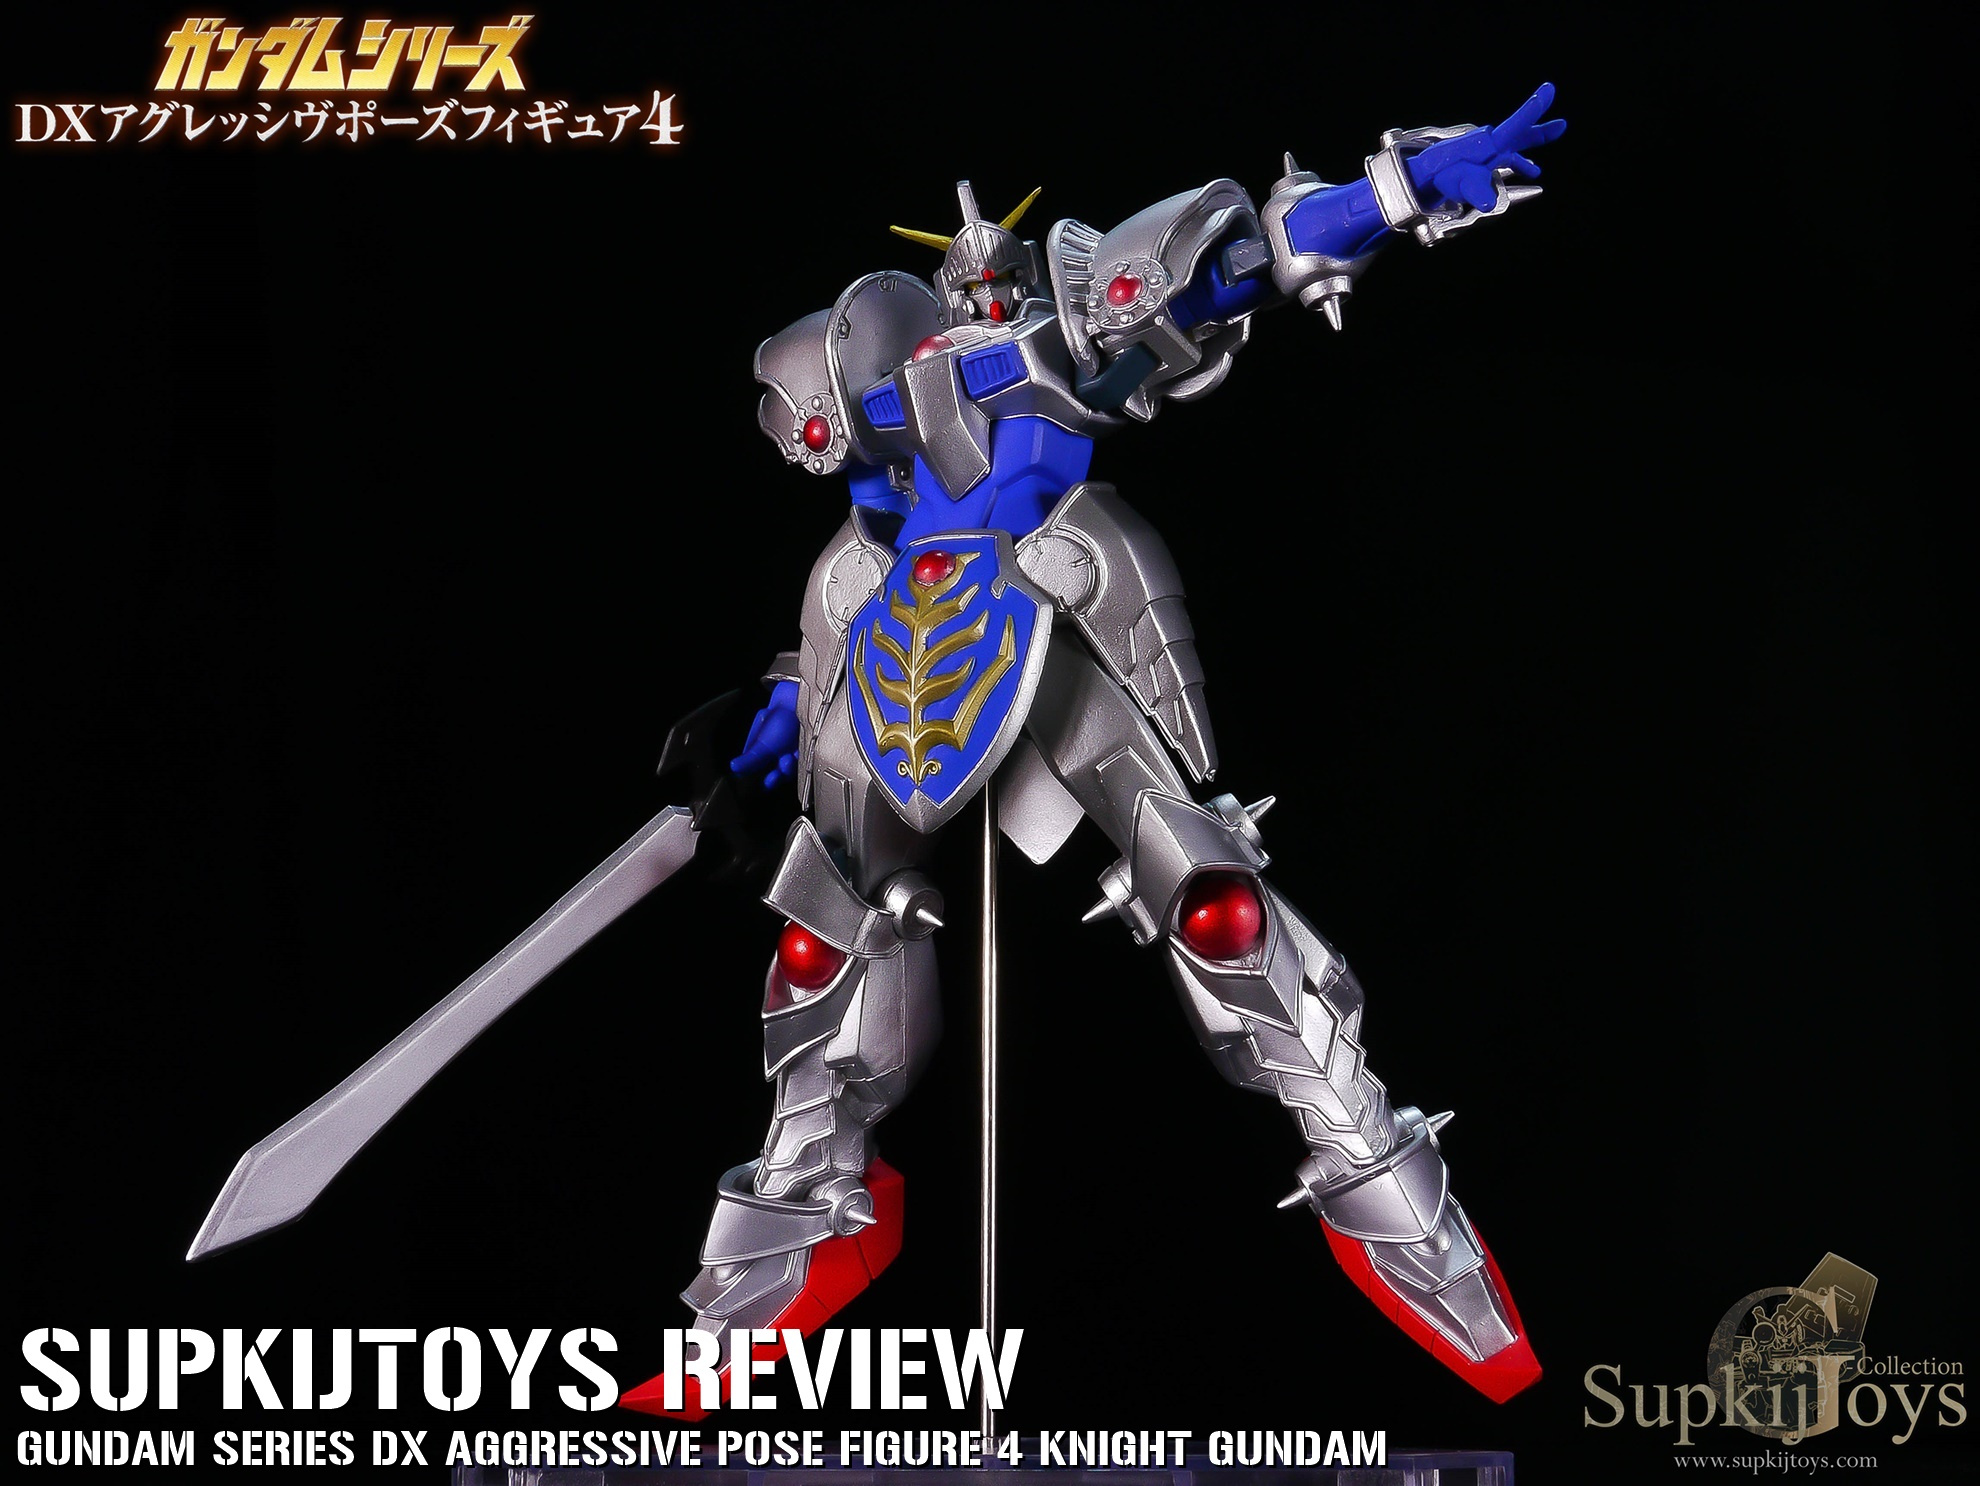 Banpresto Gundam Series DX Aggressive Pose Figure 4 Knight Gundam